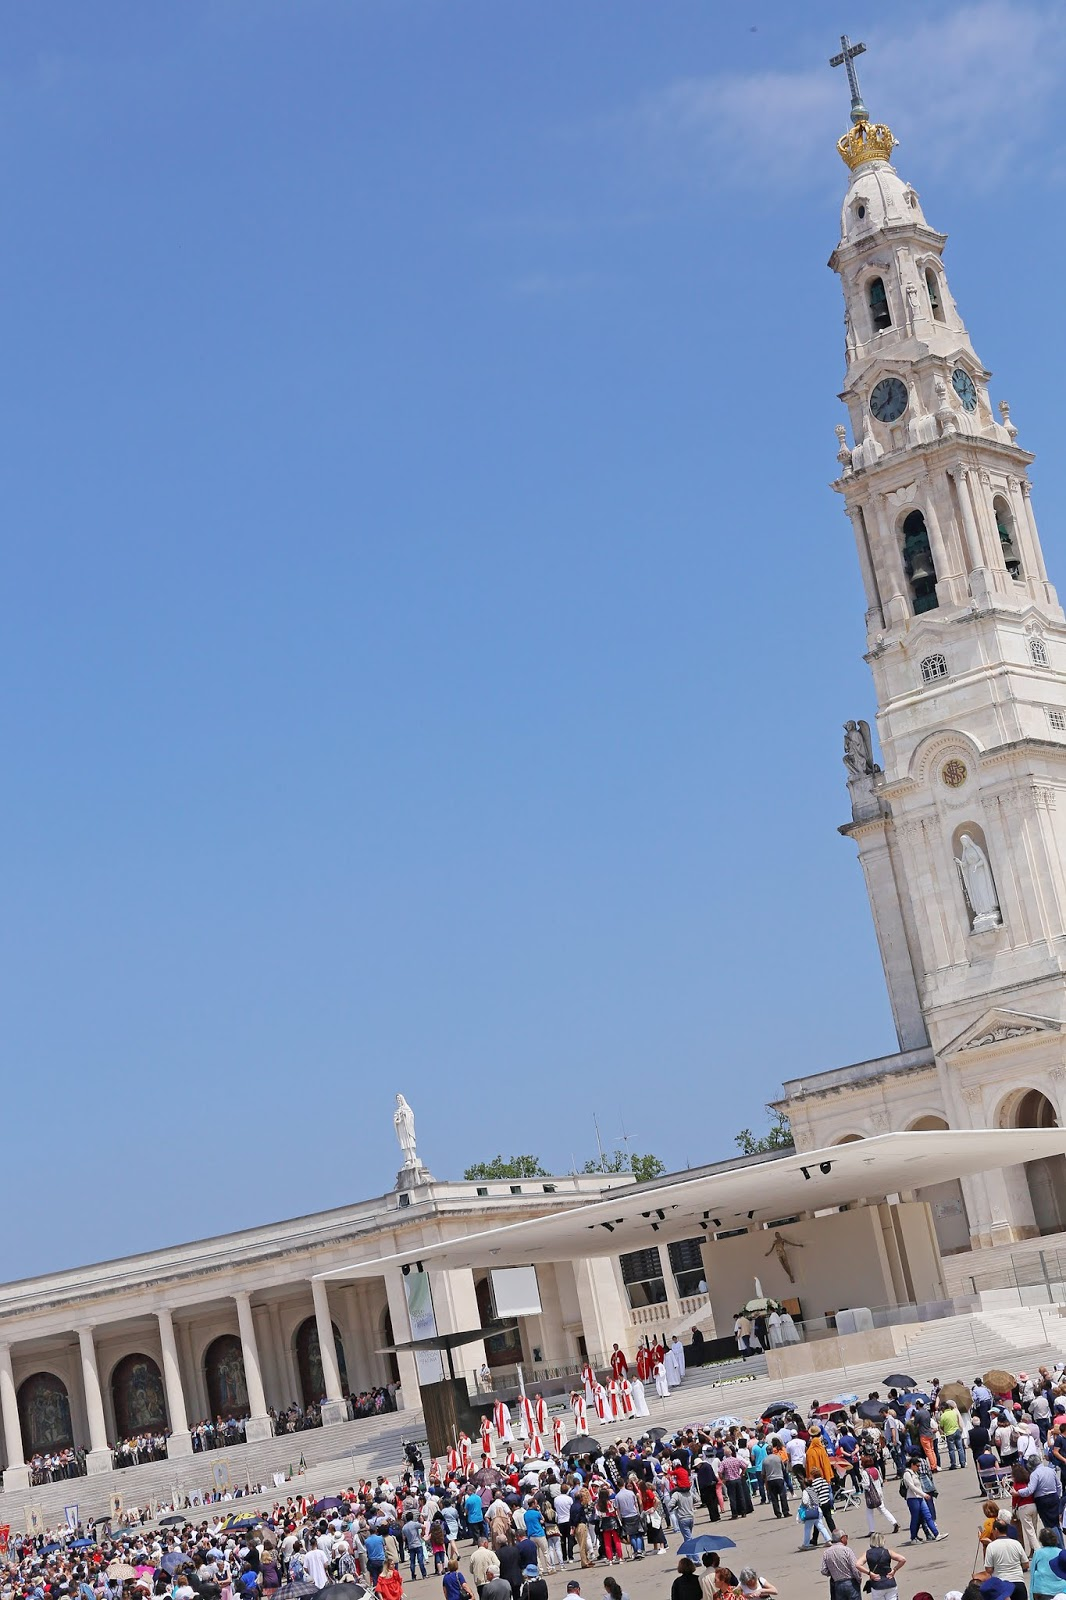 Fatima, Portugal: A Day Trip from Lisbon to Portugal's Holiest City